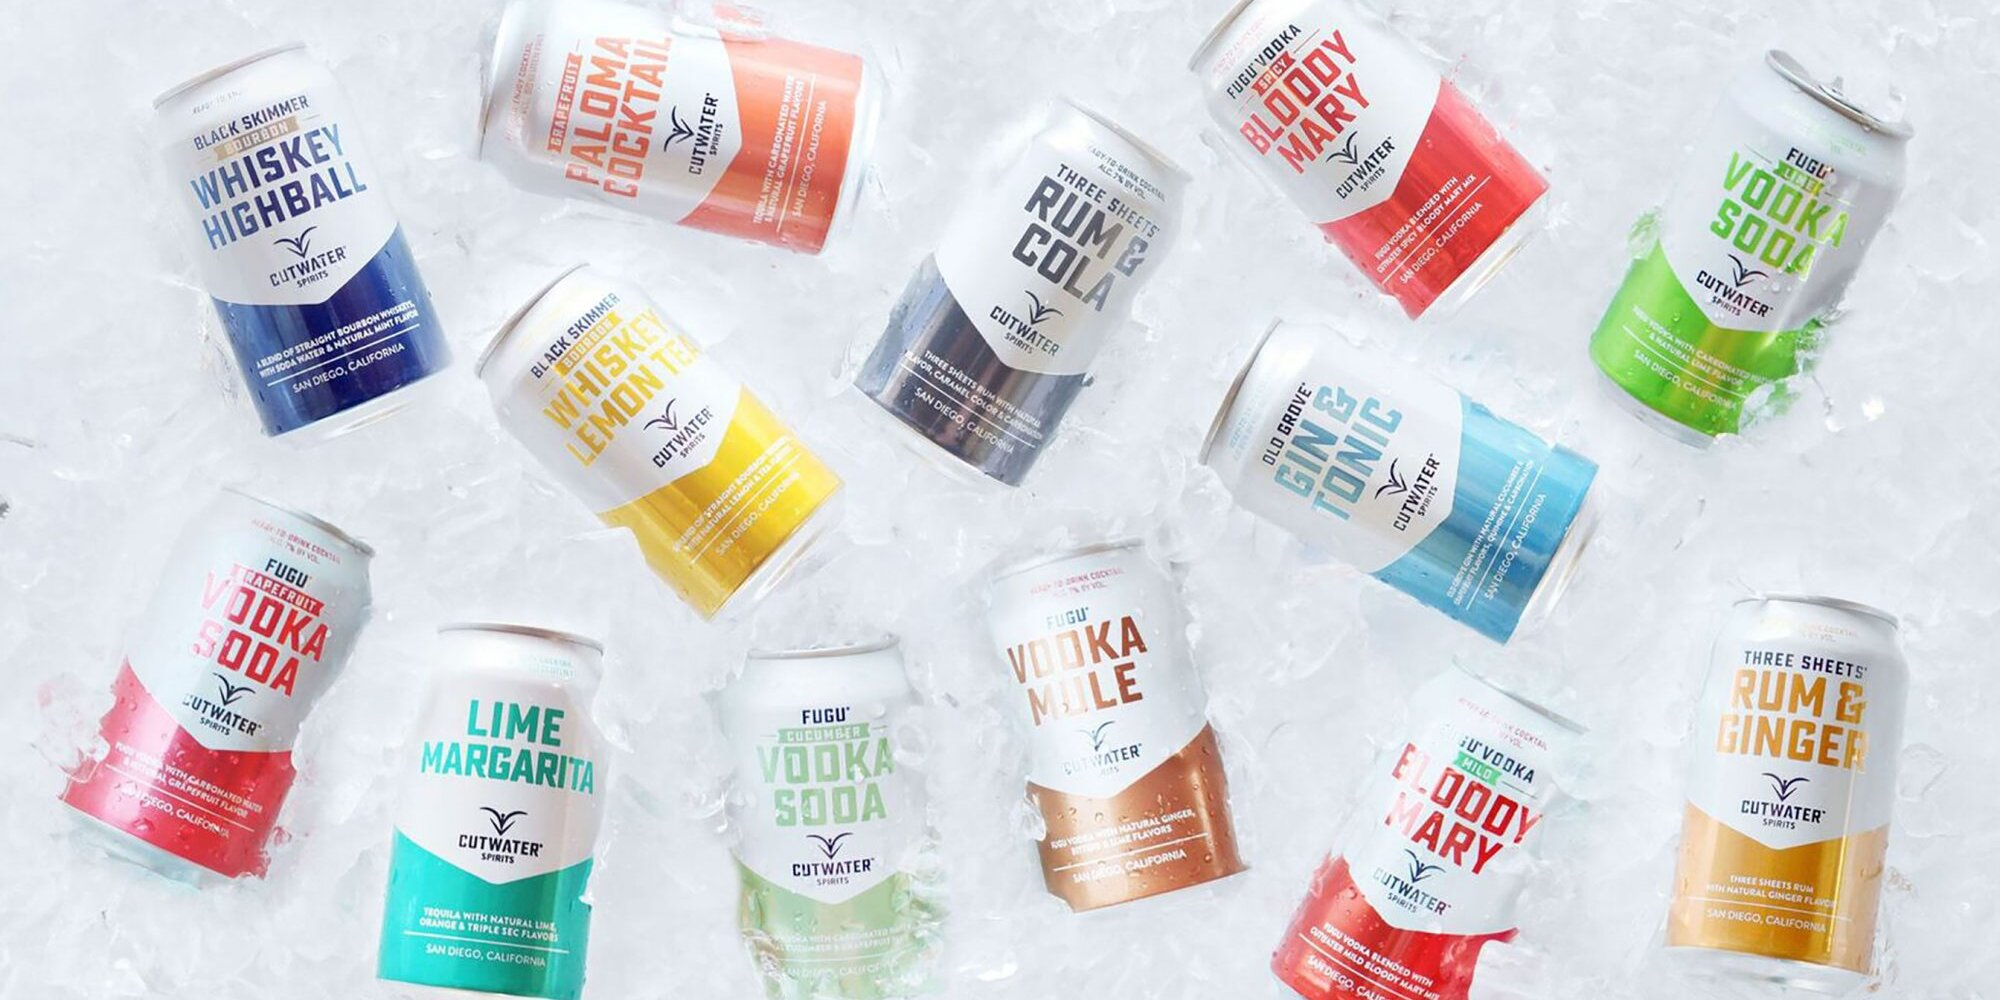 we tried 12 classic cocktails from a can and a few took us by